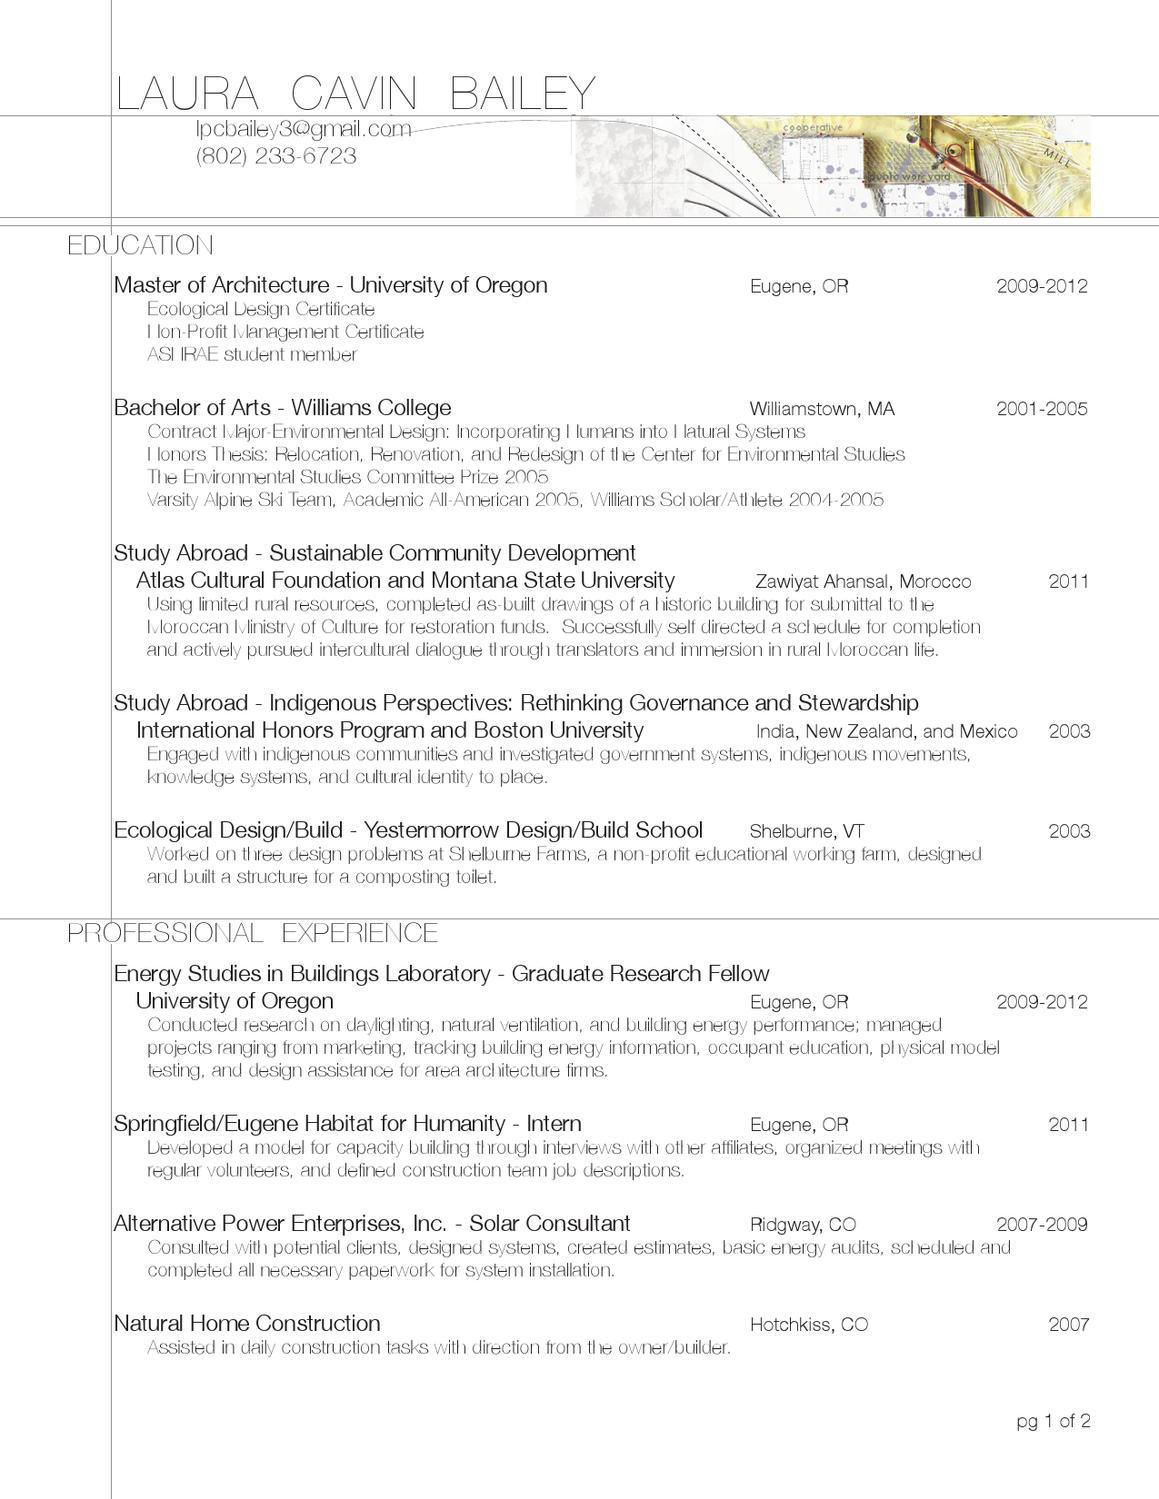 resume by laura cavin bailey